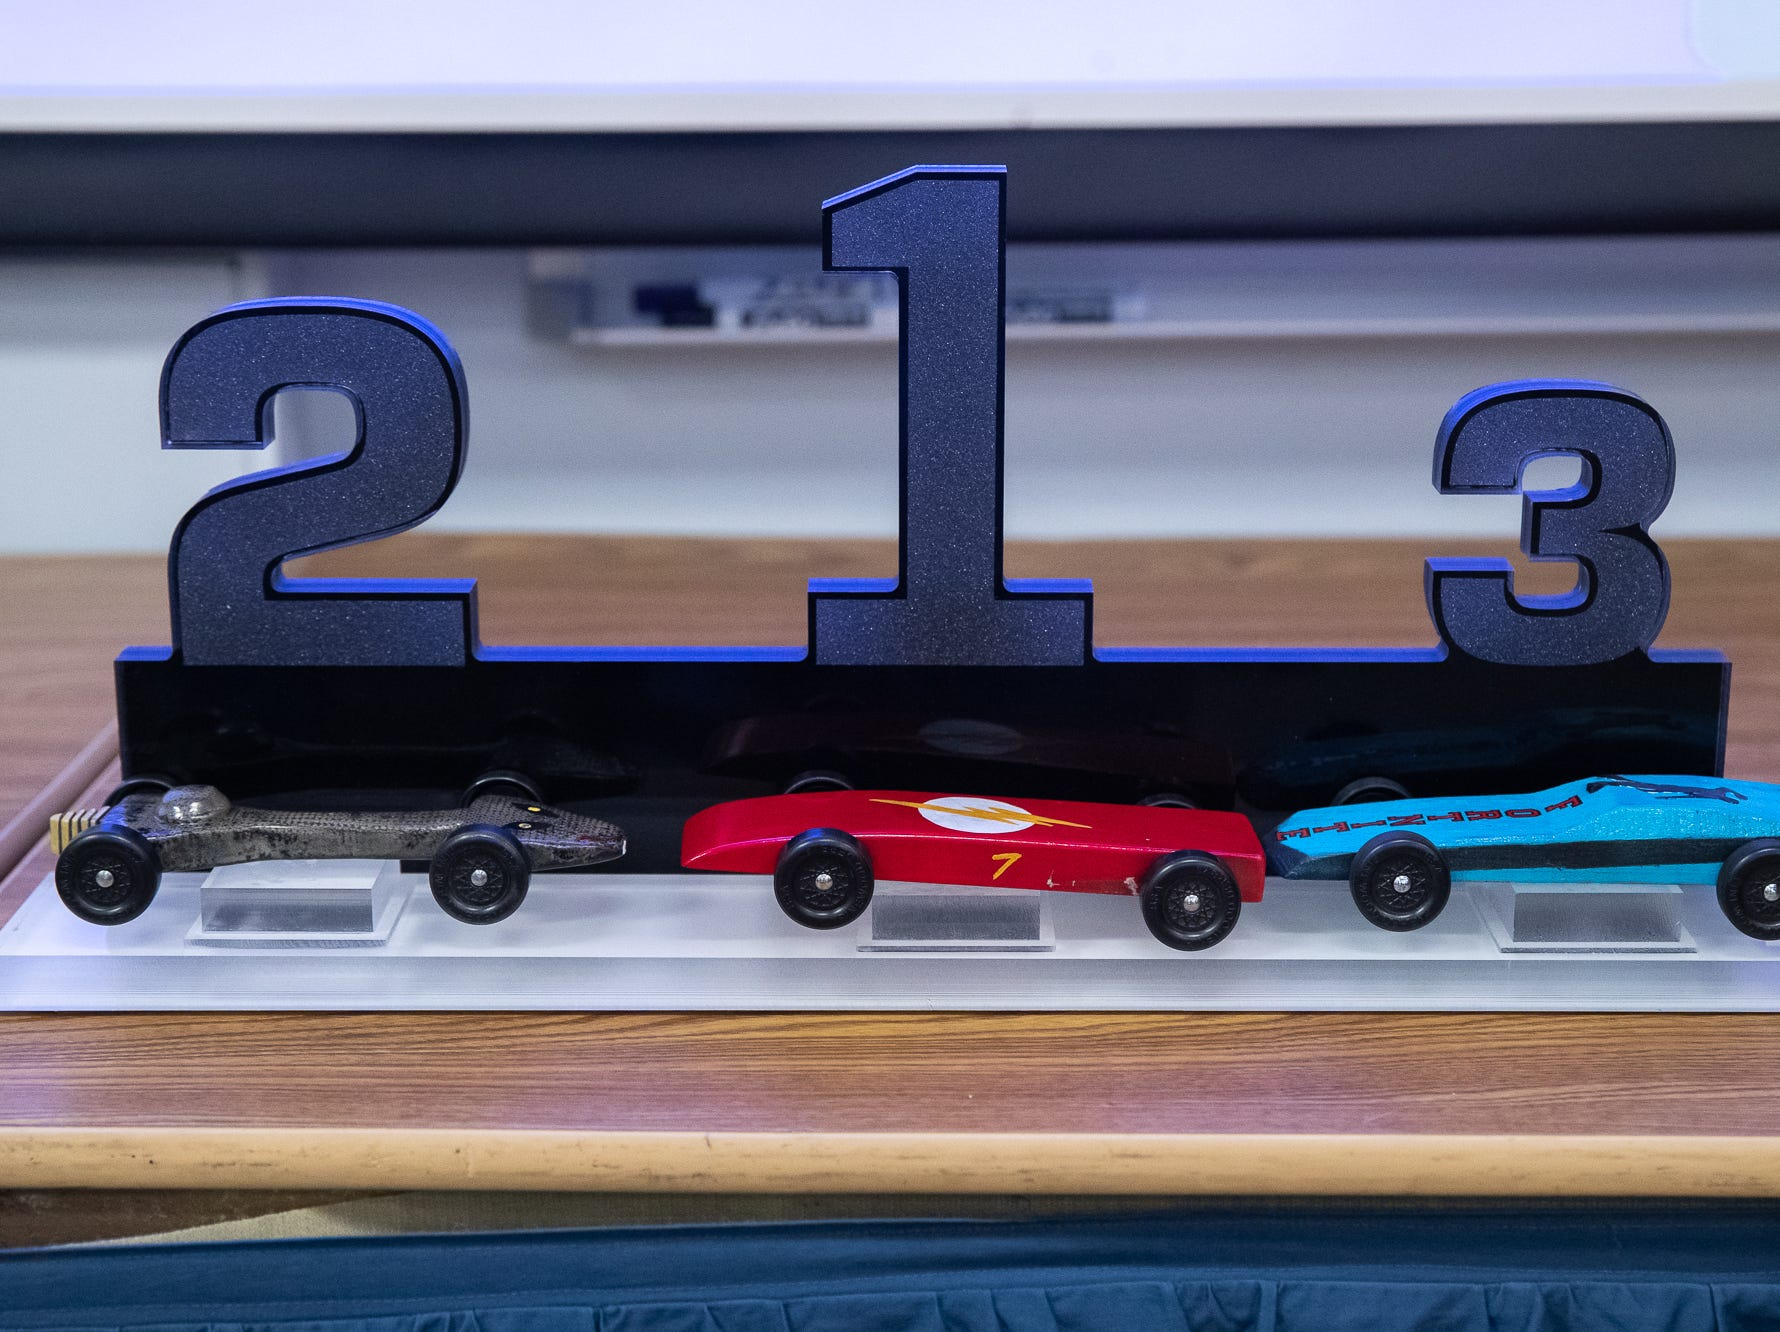 The top three cars sit upon a trophy during the cub scouts pack 127 Pinewood Derby event at Lincoln Intermediate Unit 12, Sunday, Feb. 10 in New Oxford. The scouts had a month to design their custom pinewood cars to race in the event.